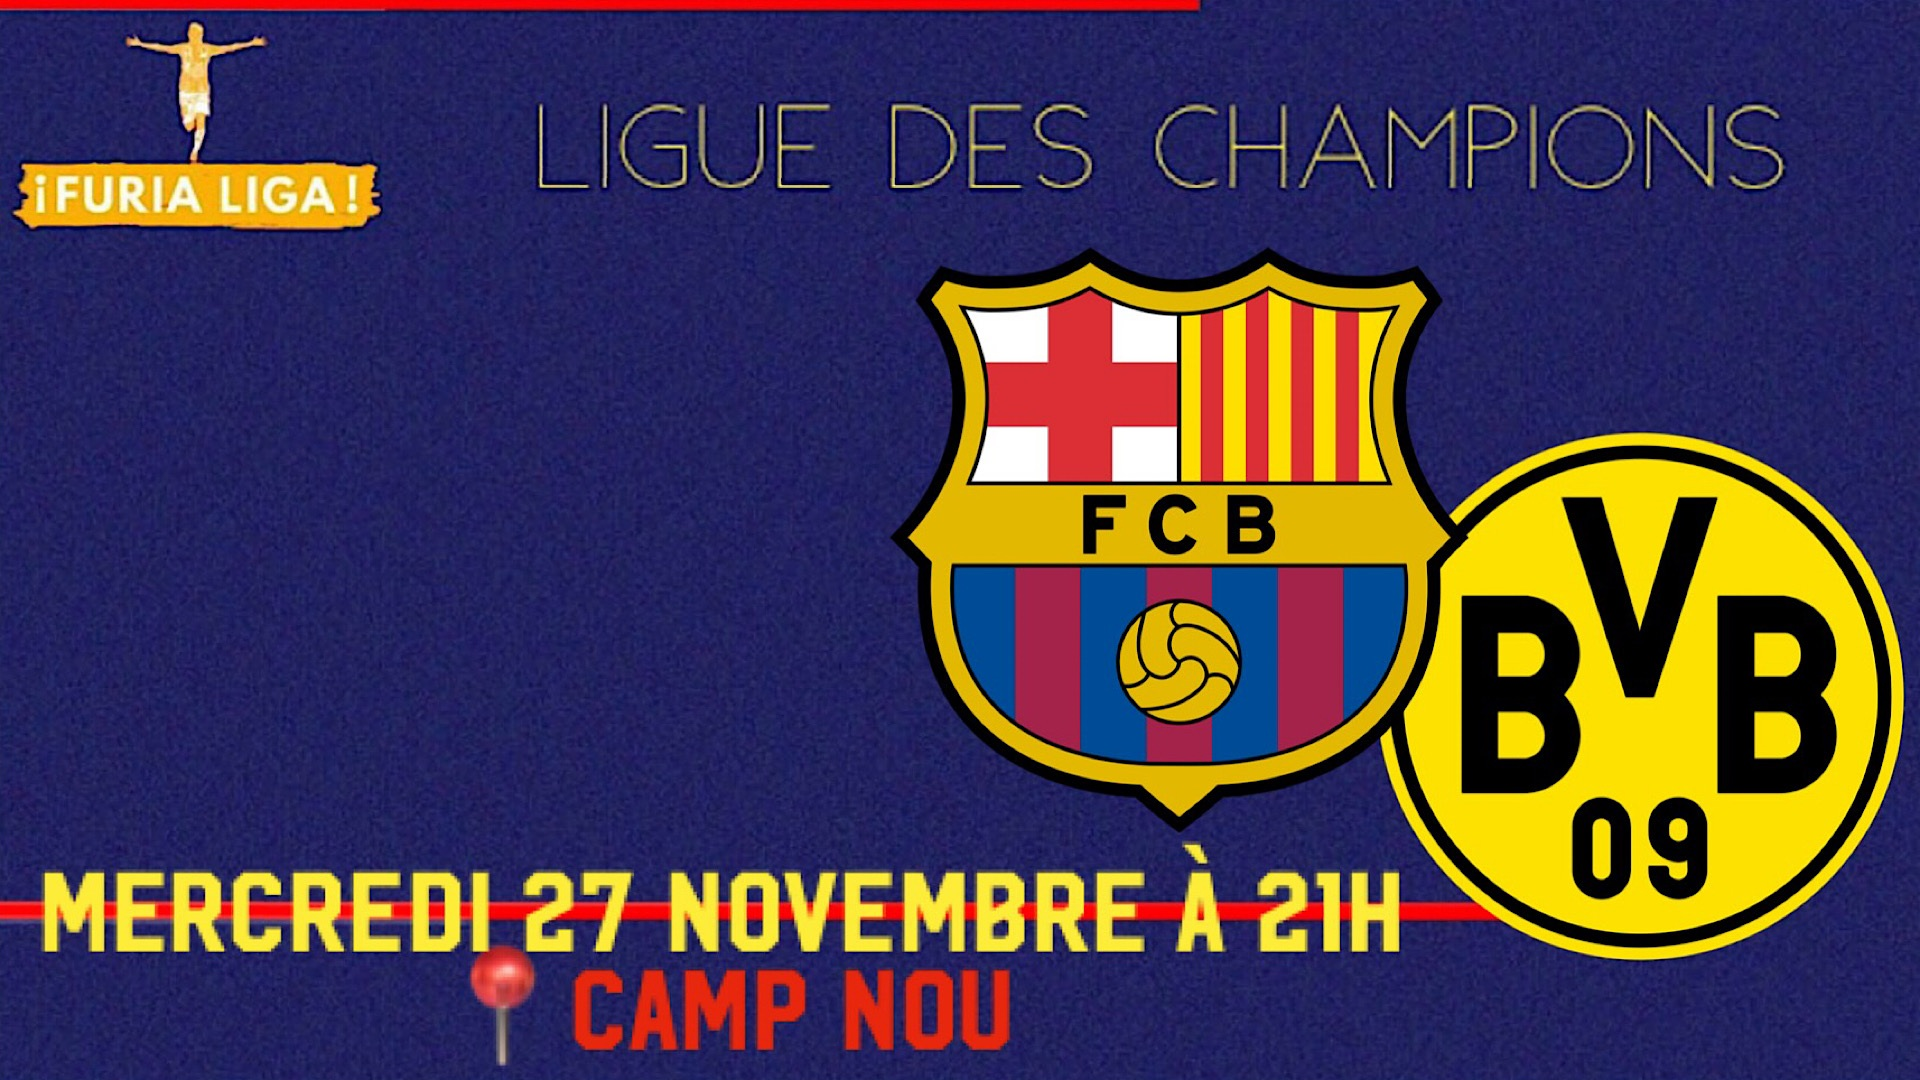 FC Barcelone - Borussia Dortmund Streaming : comment regarder le match en direct